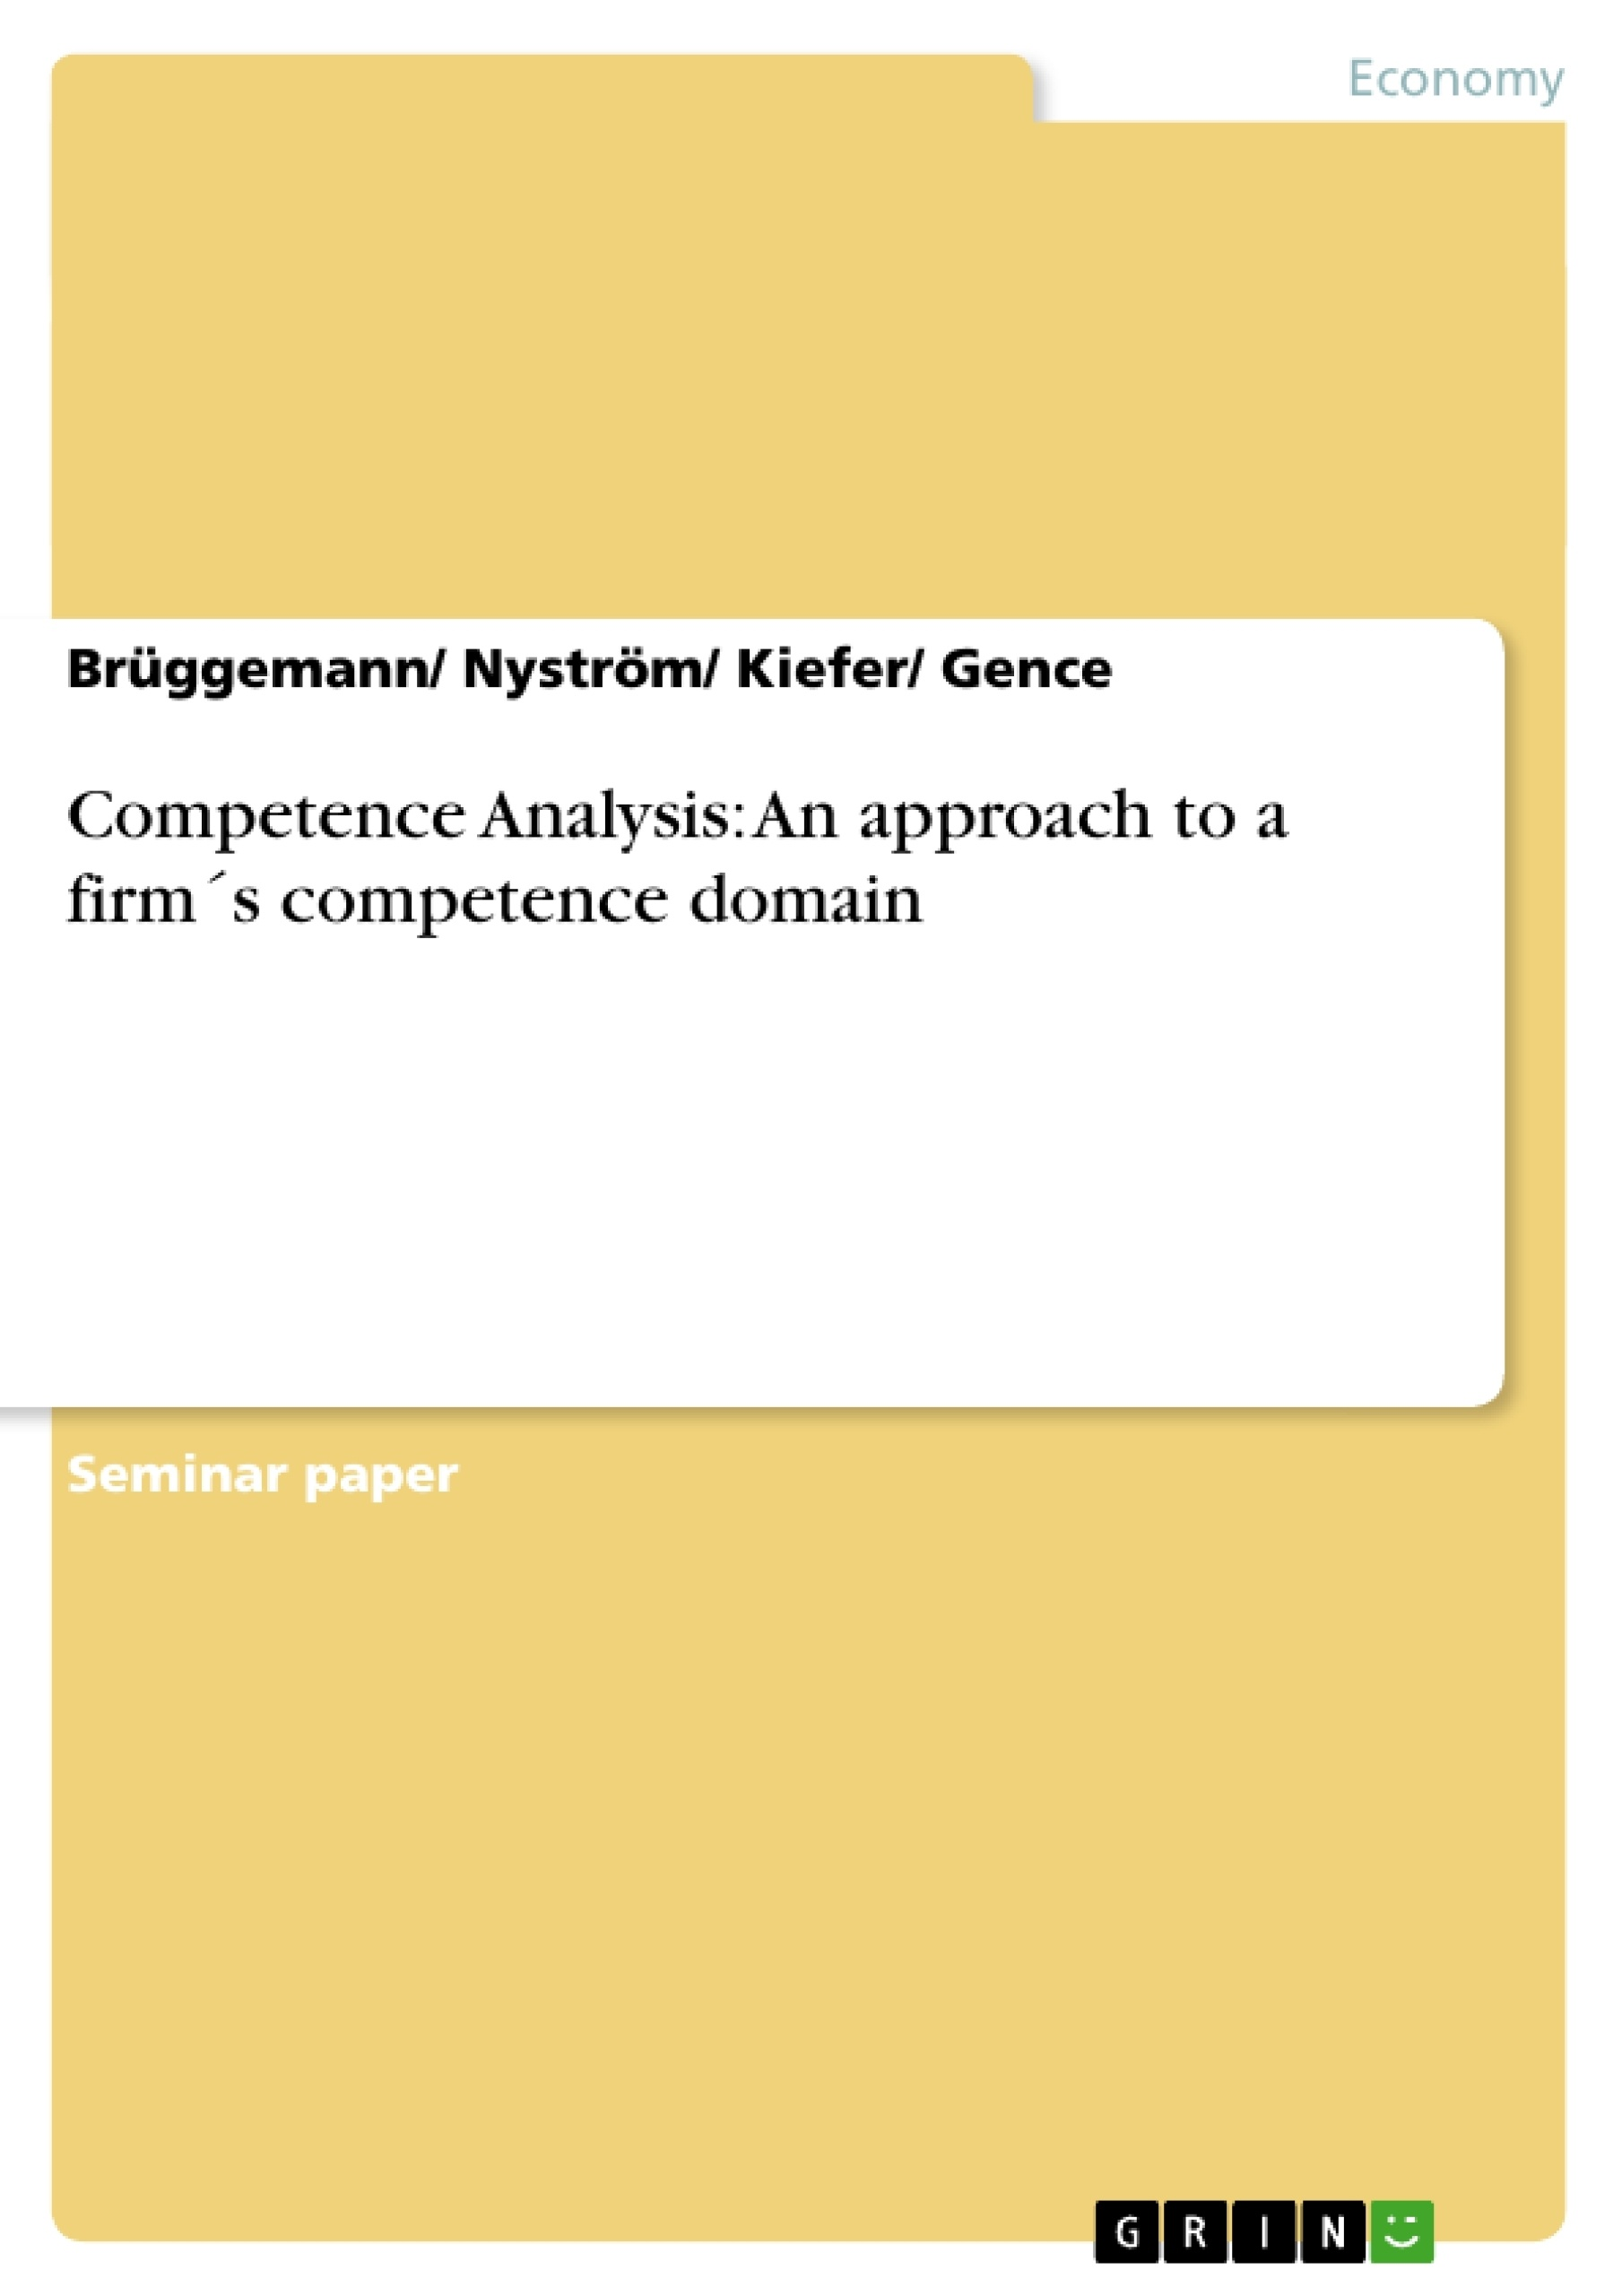 Title: Competence Analysis: An approach to a firm´s competence domain